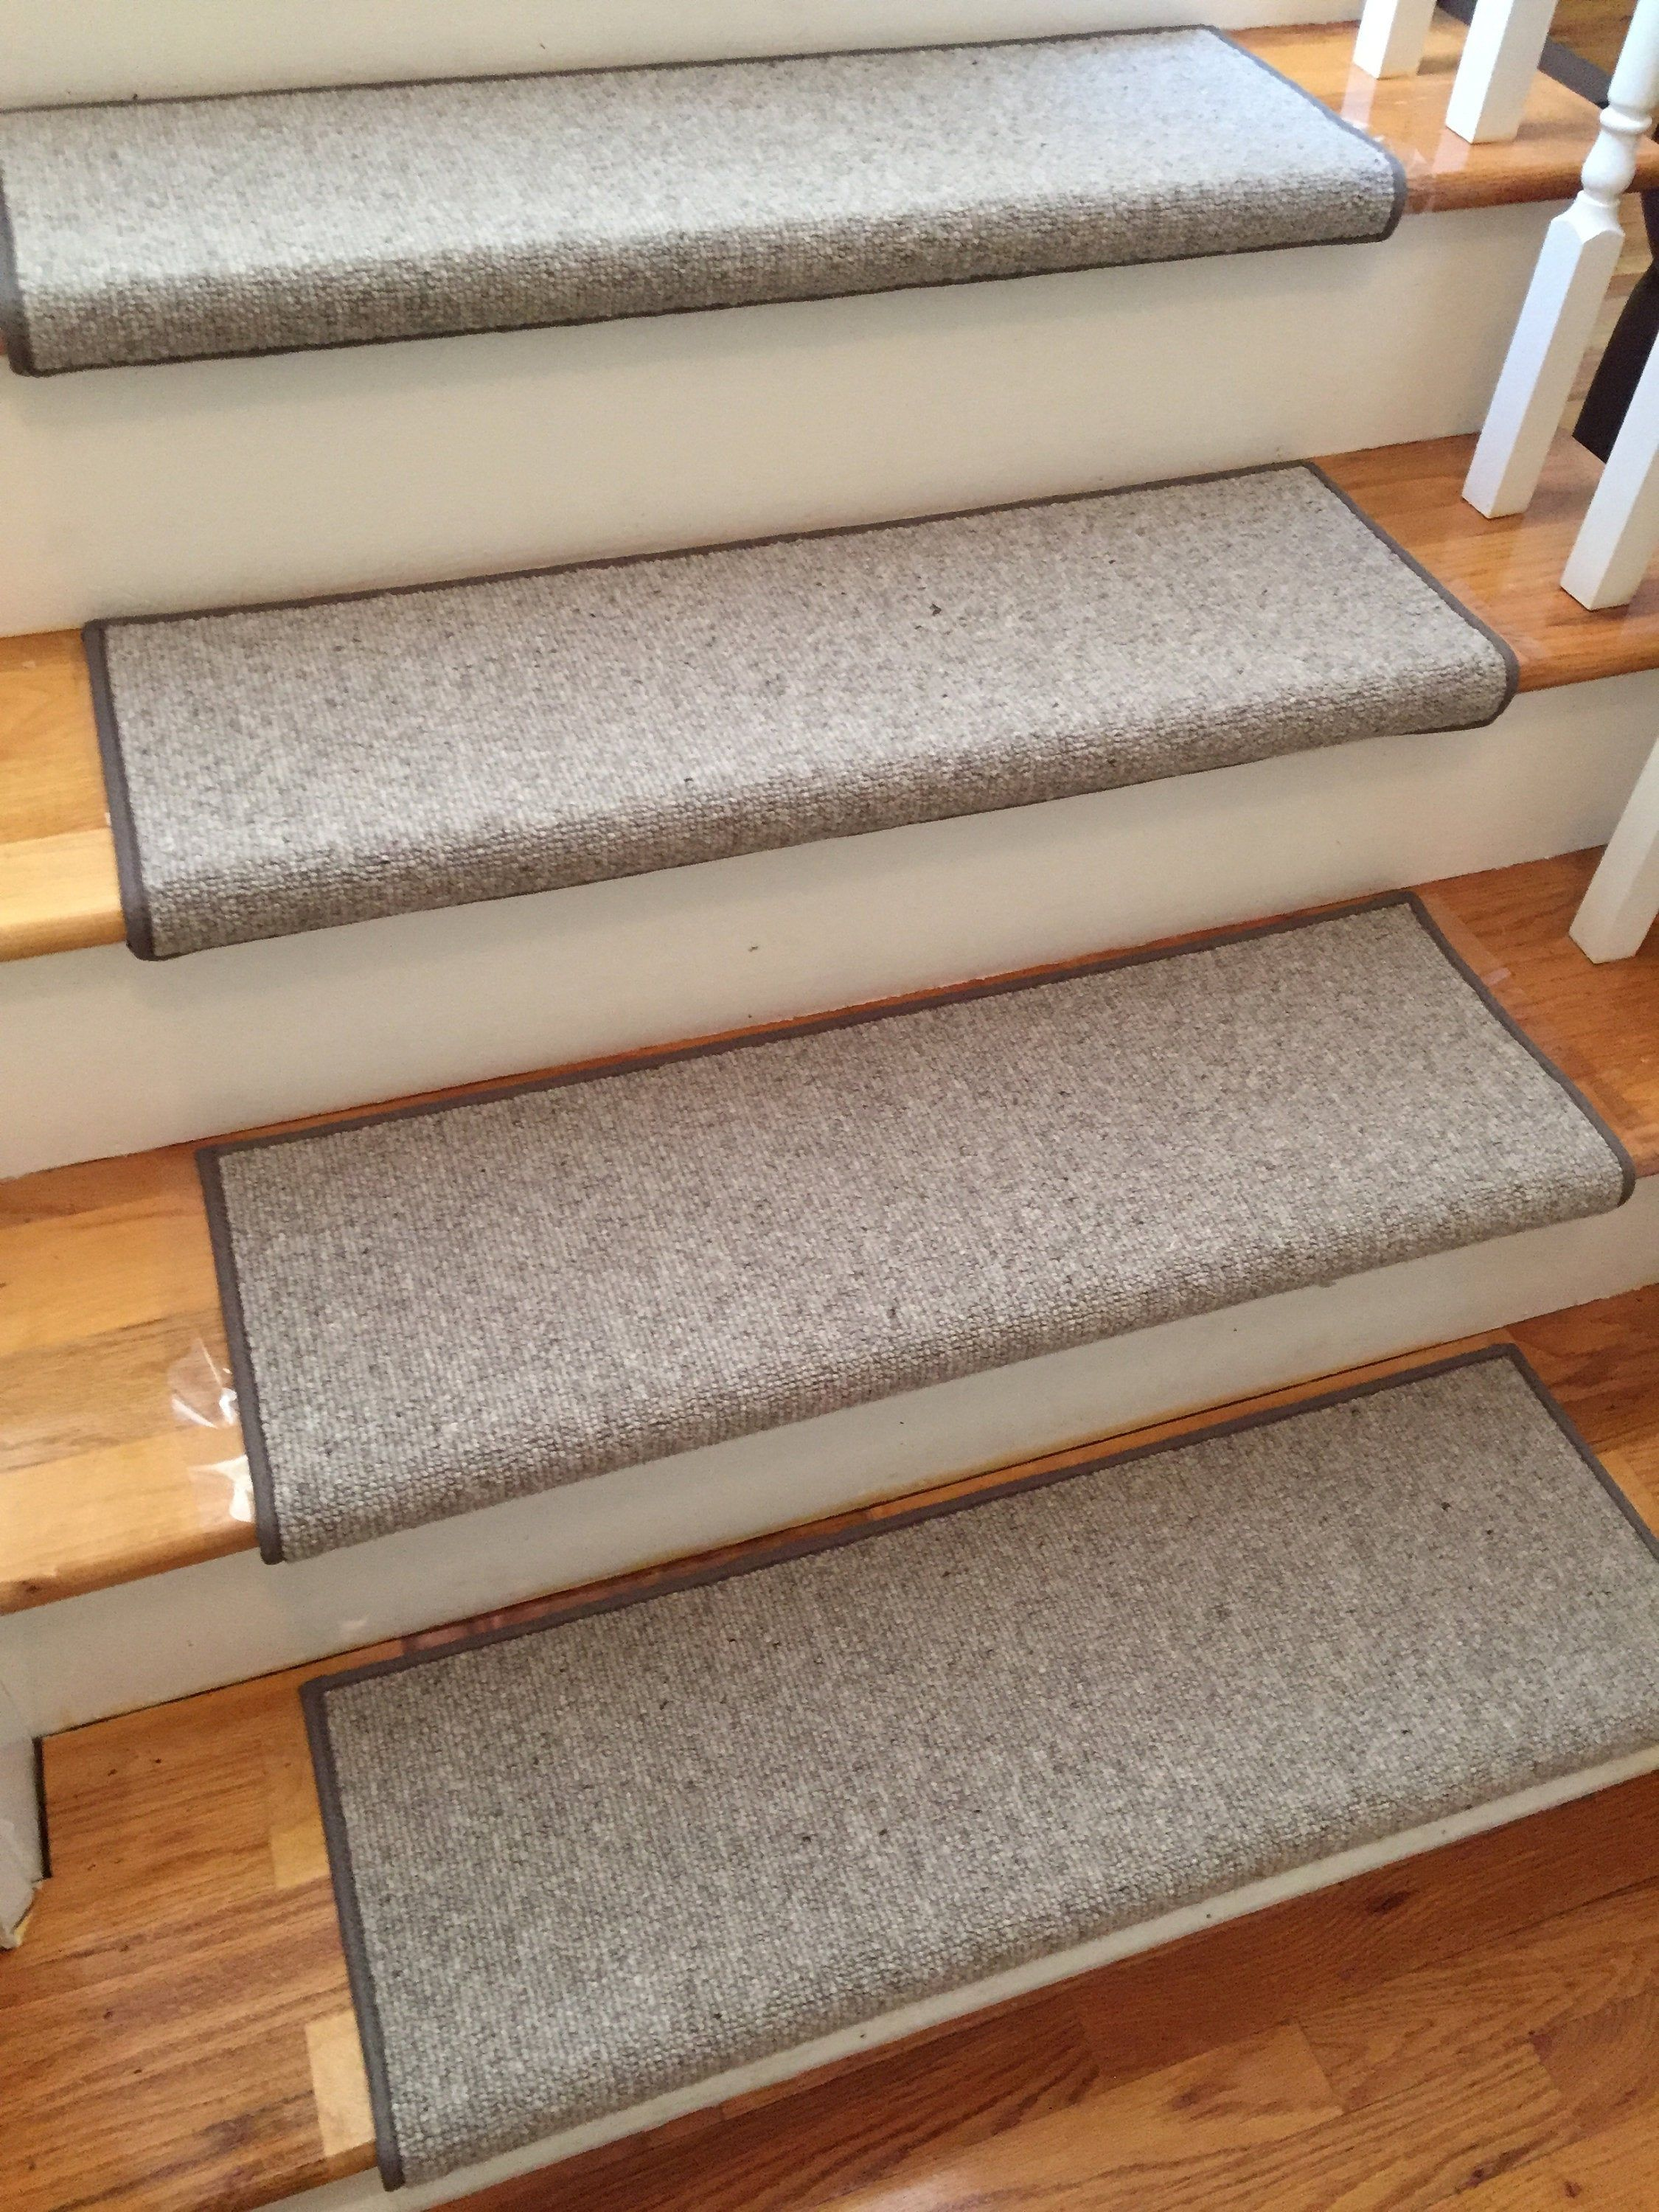 Morocco Stone 100 Wool True Bullnose Padded Carpet Stair Etsy Carpet Stairs Carpet Stair Treads Deep Carpet Cleaning